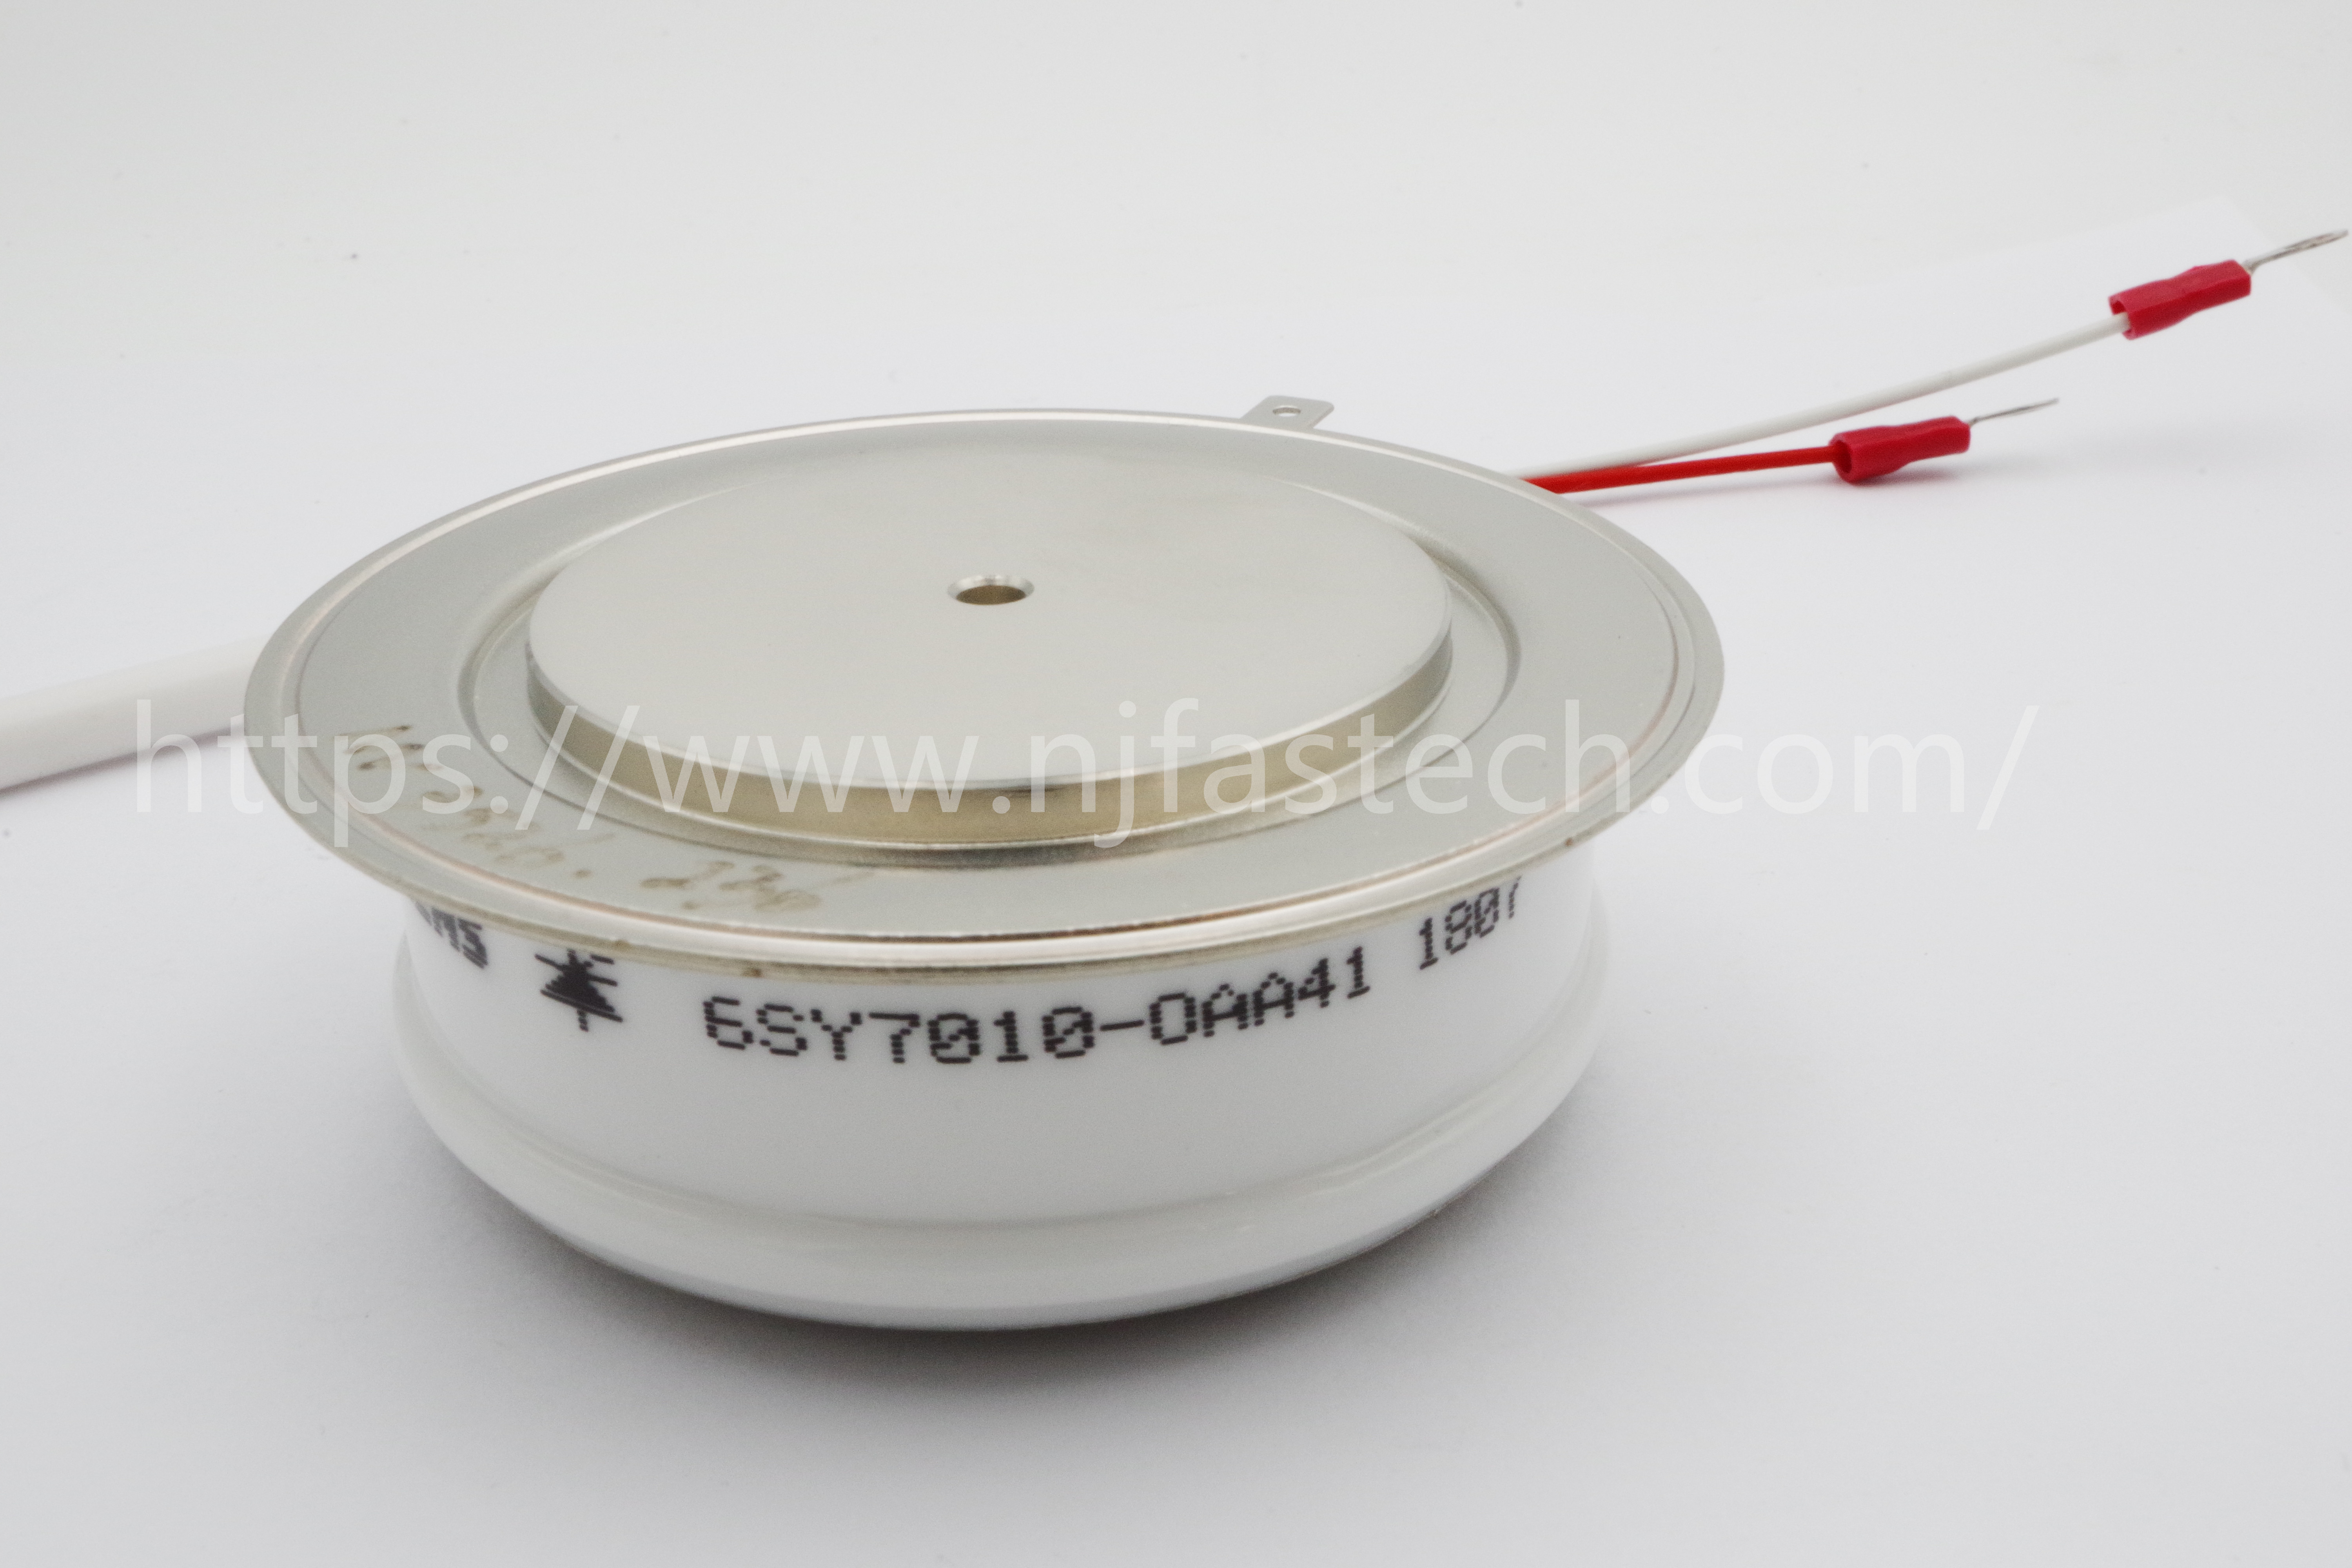 New and original electronics parts original diode 6SY7010-OAA41 high power thyristor